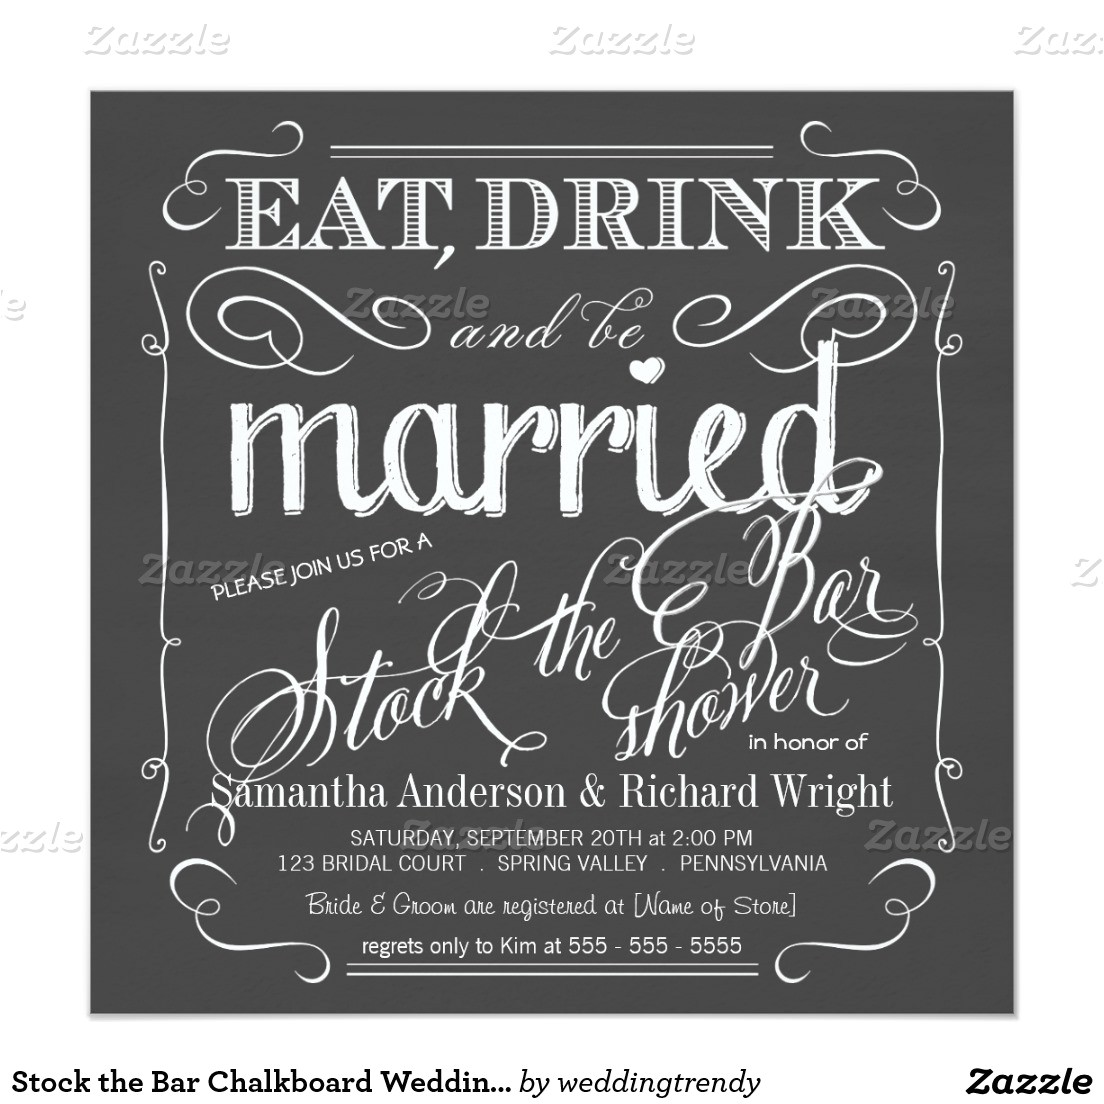 stock the bar wedding shower invitations